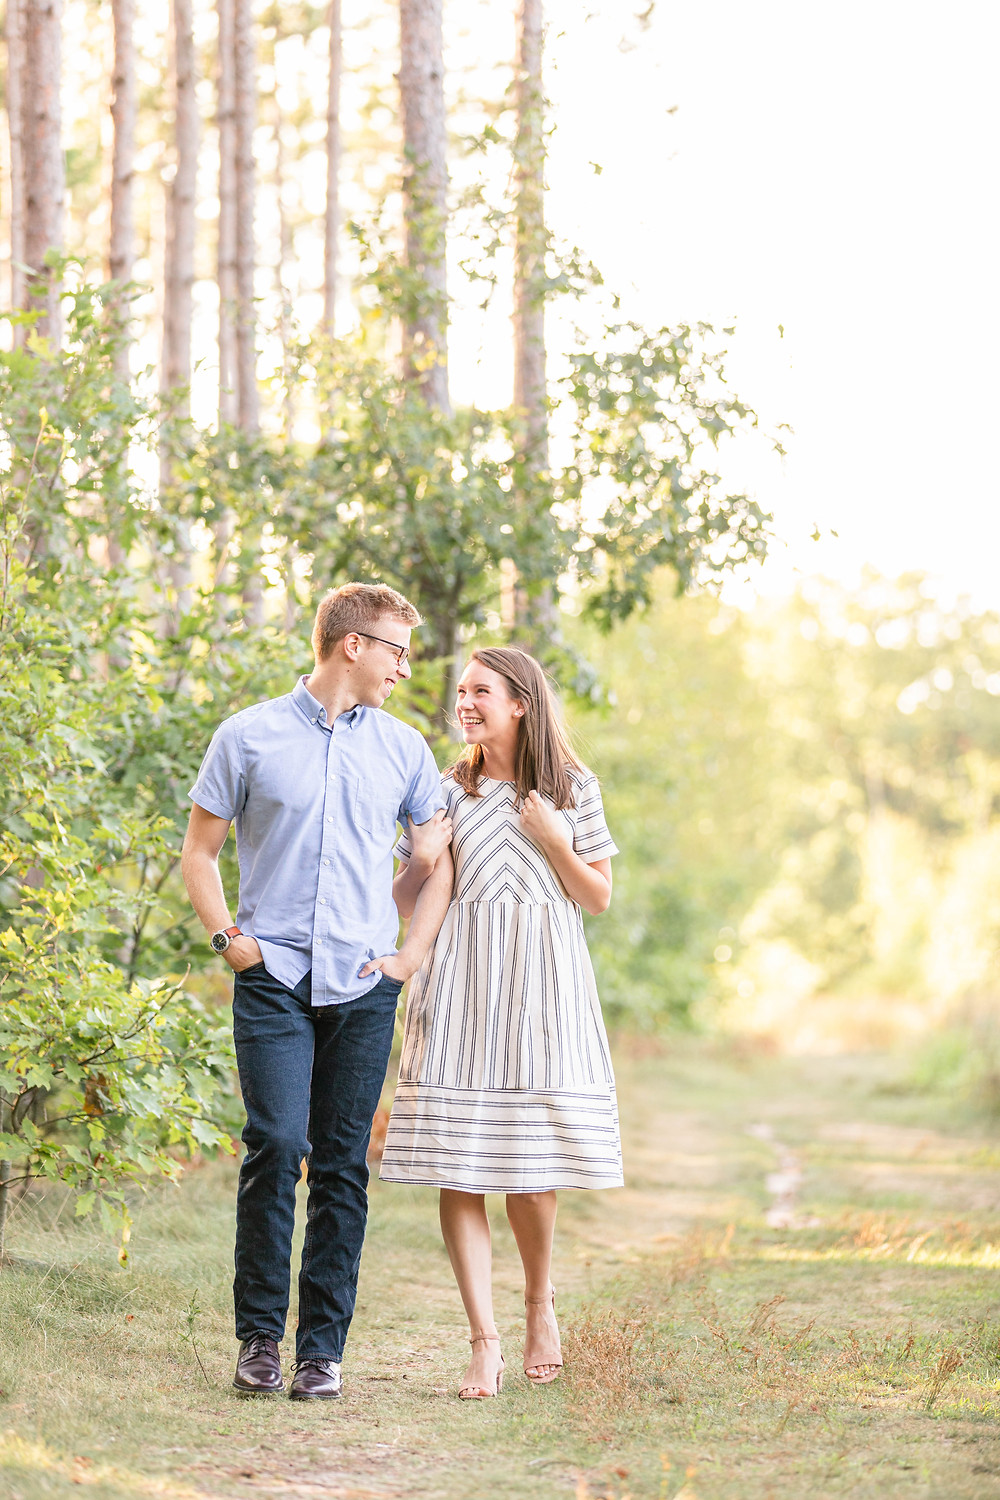 Engagement Photos Riley Trails Holland Michigan Engaged Couple holding arms walking smiling